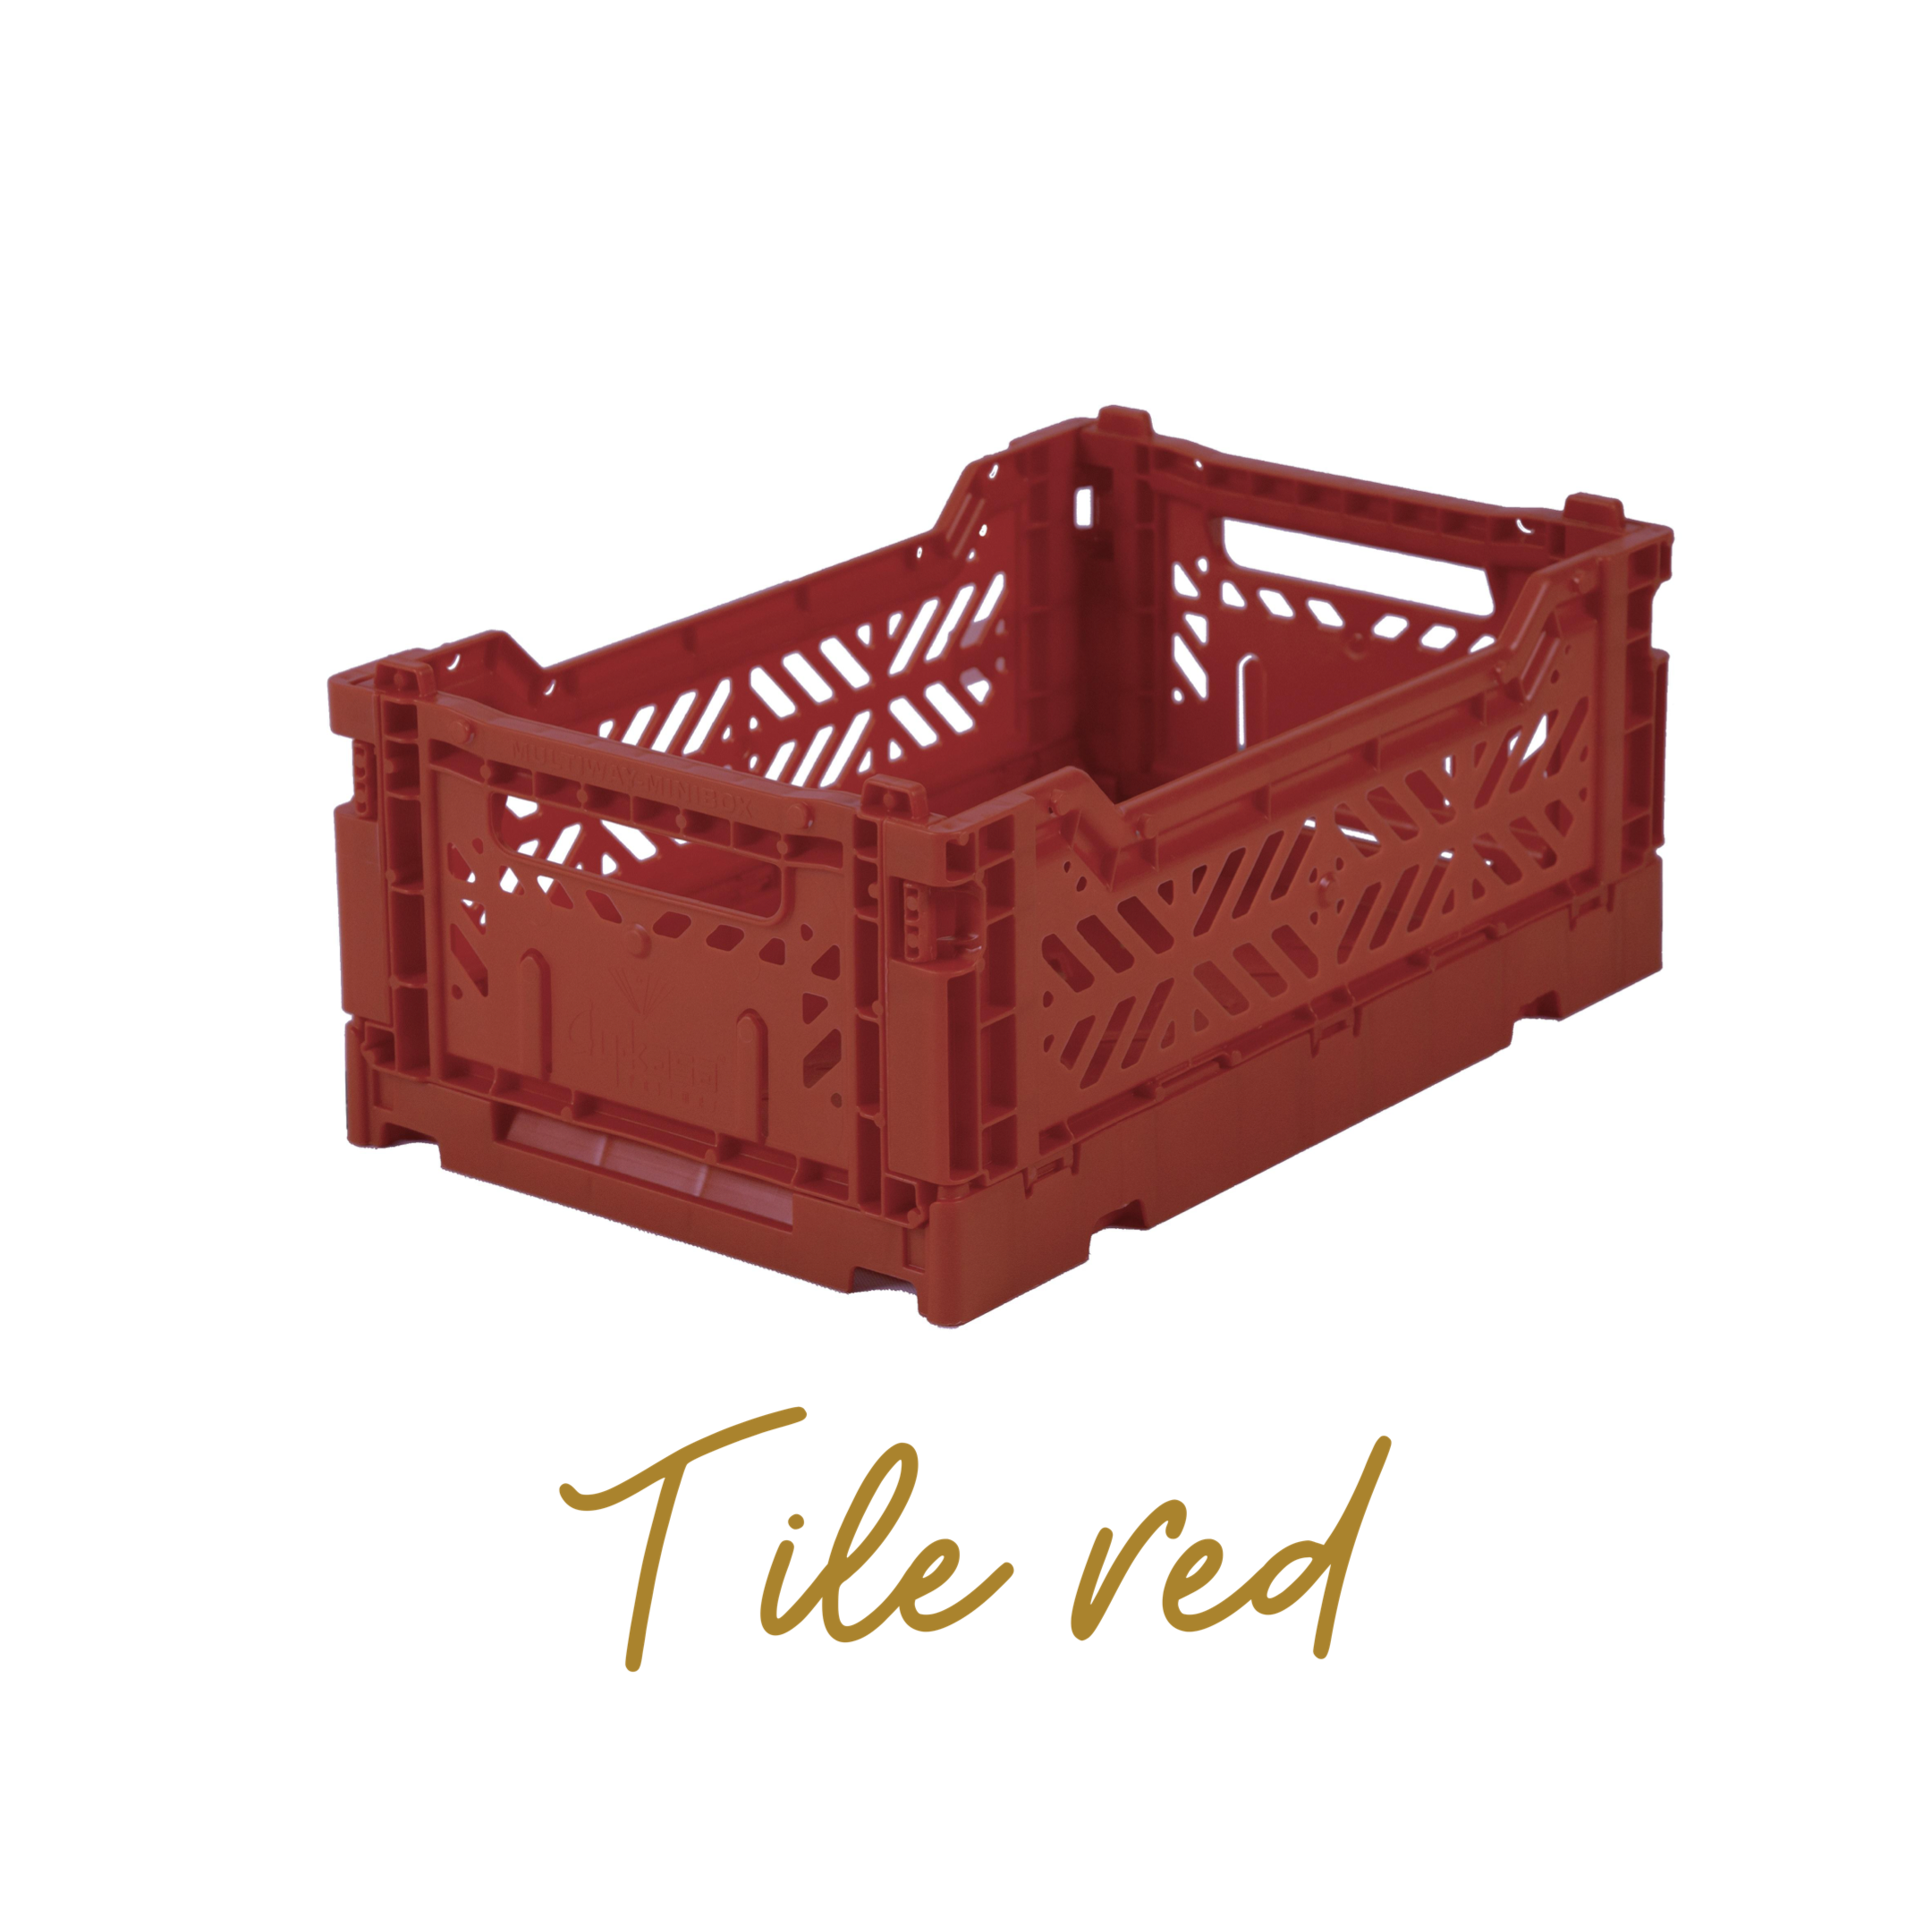 AYKASA Coloured Storage Crates - MINI - Tile Red